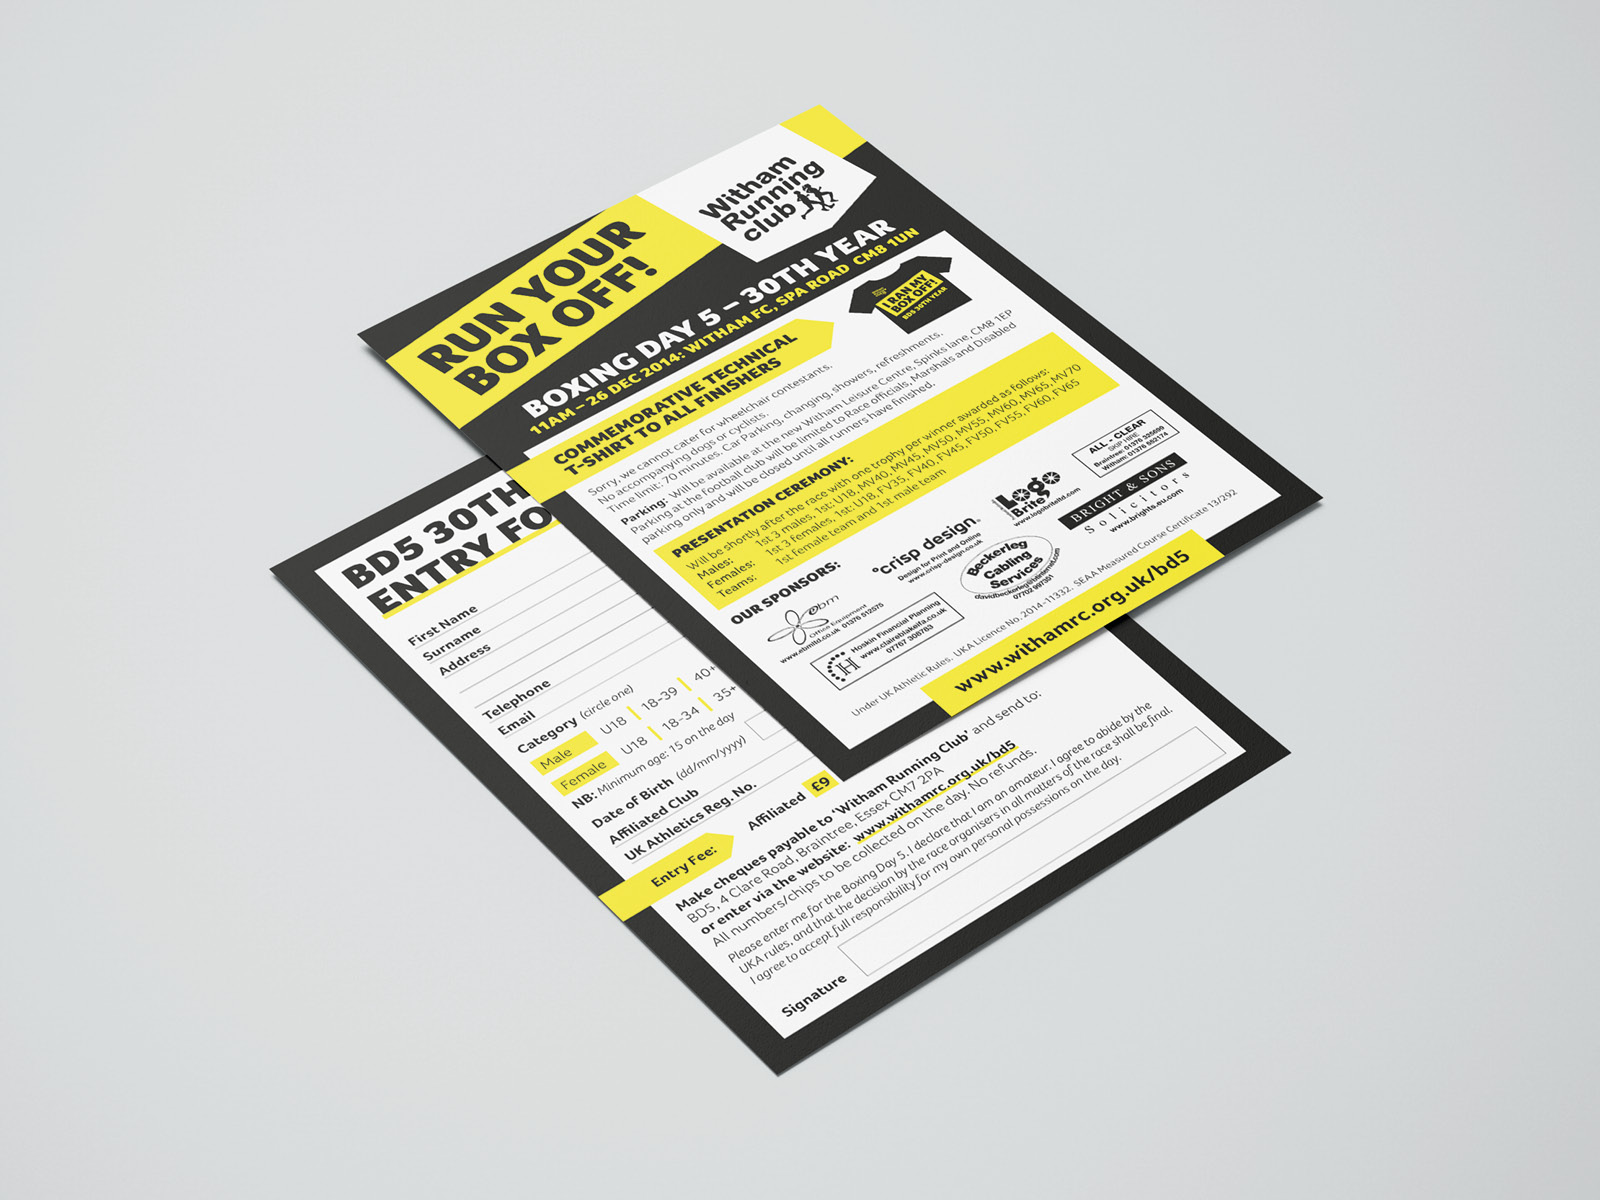 Race Leaflet design